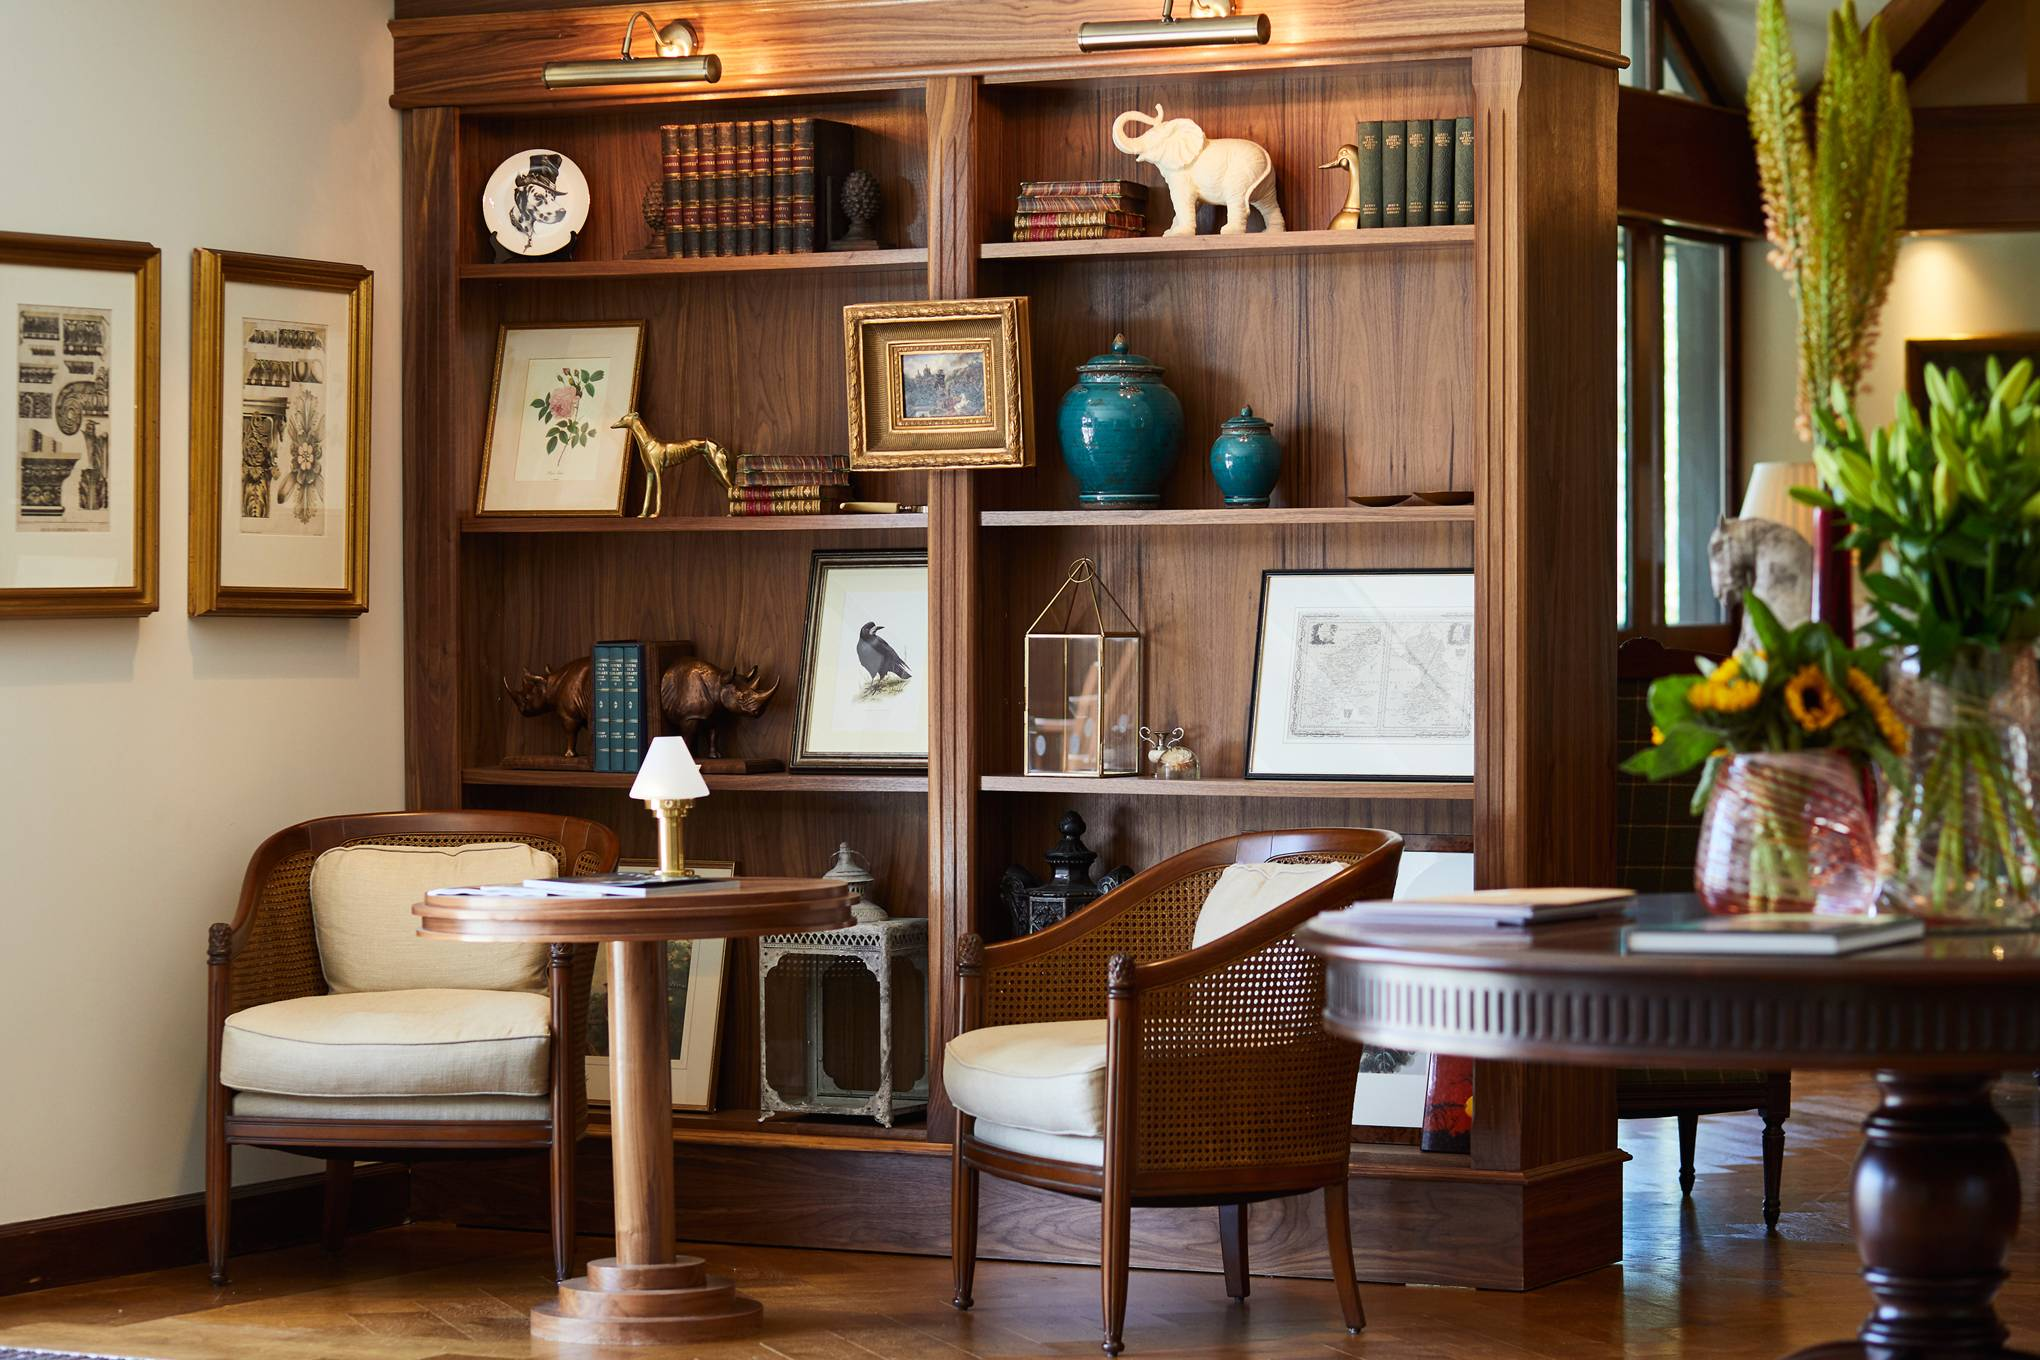 Inside Holland & Holland's countryside lodge